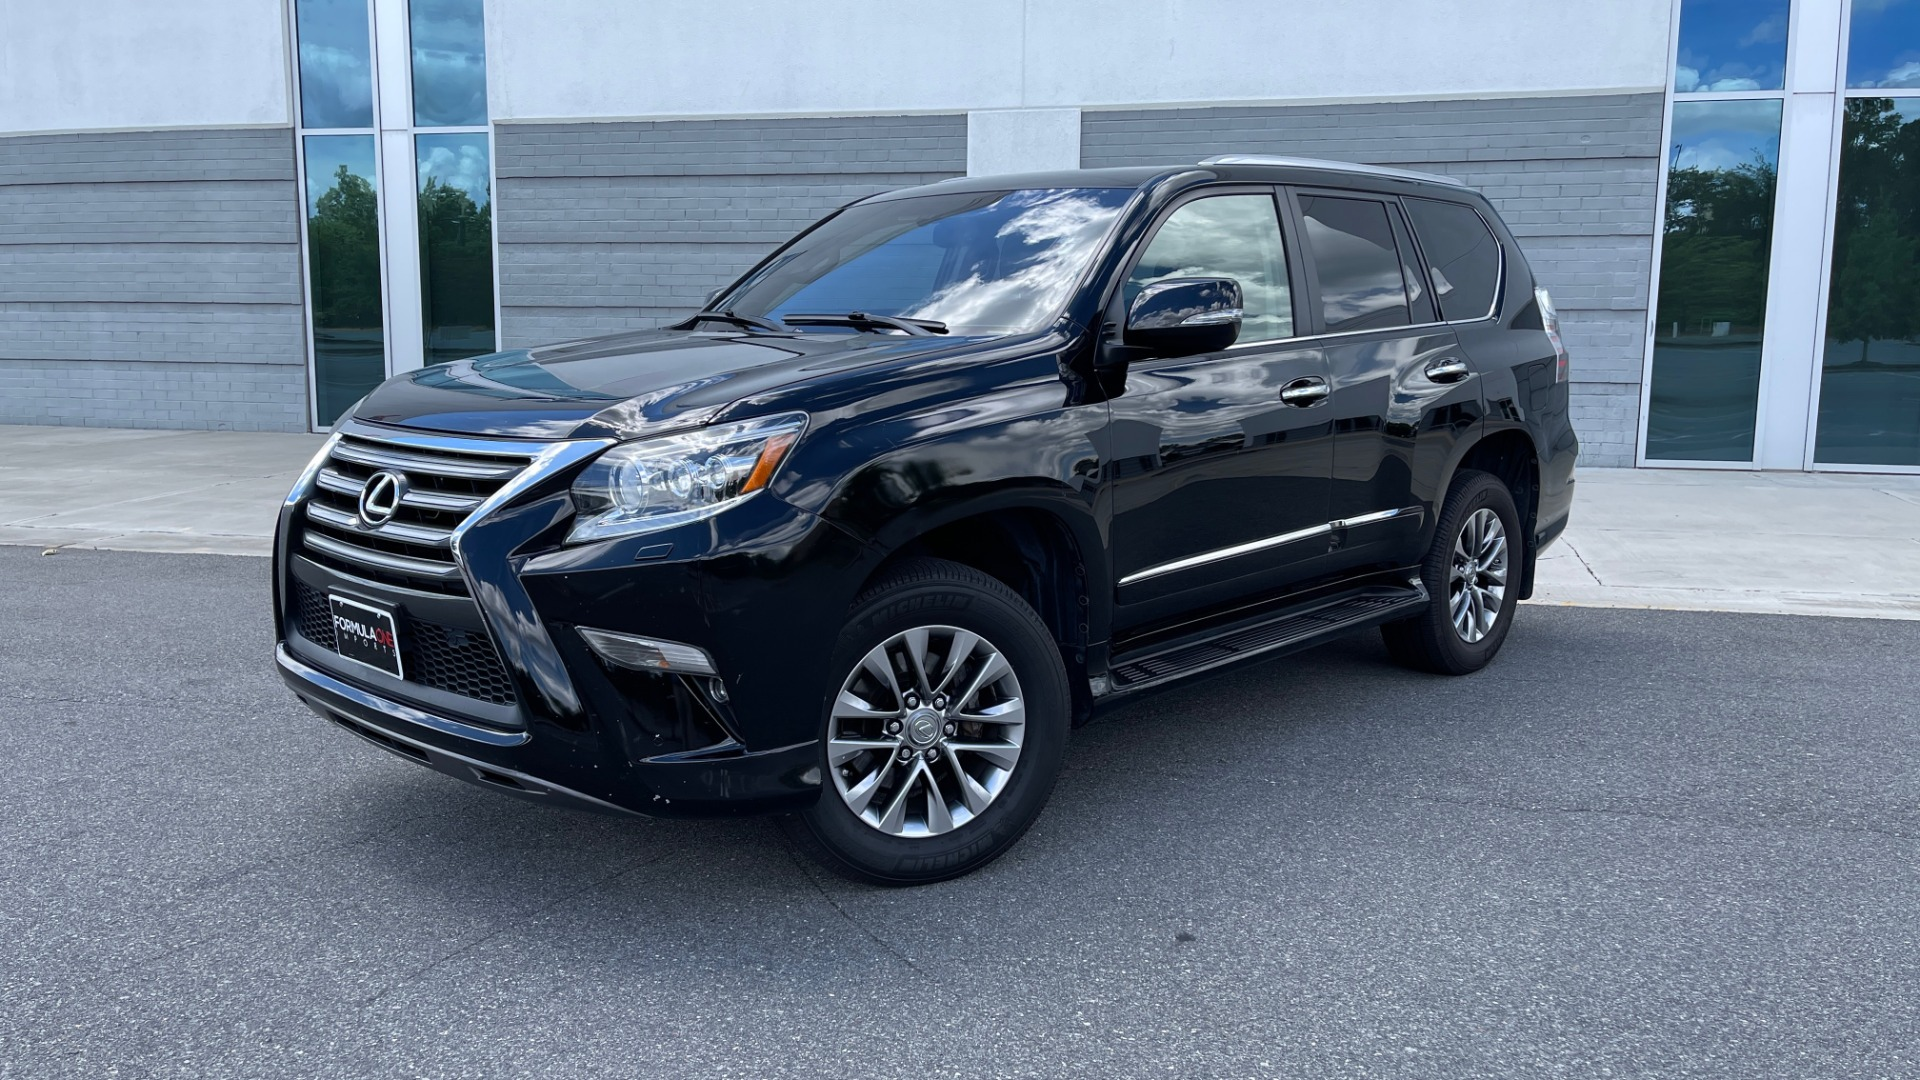 Used 2017 Lexus GX GX 460 LUXURY / AWD / NAV / SUNROOF / MARK LEV SND / REARVIEW for sale $37,995 at Formula Imports in Charlotte NC 28227 1